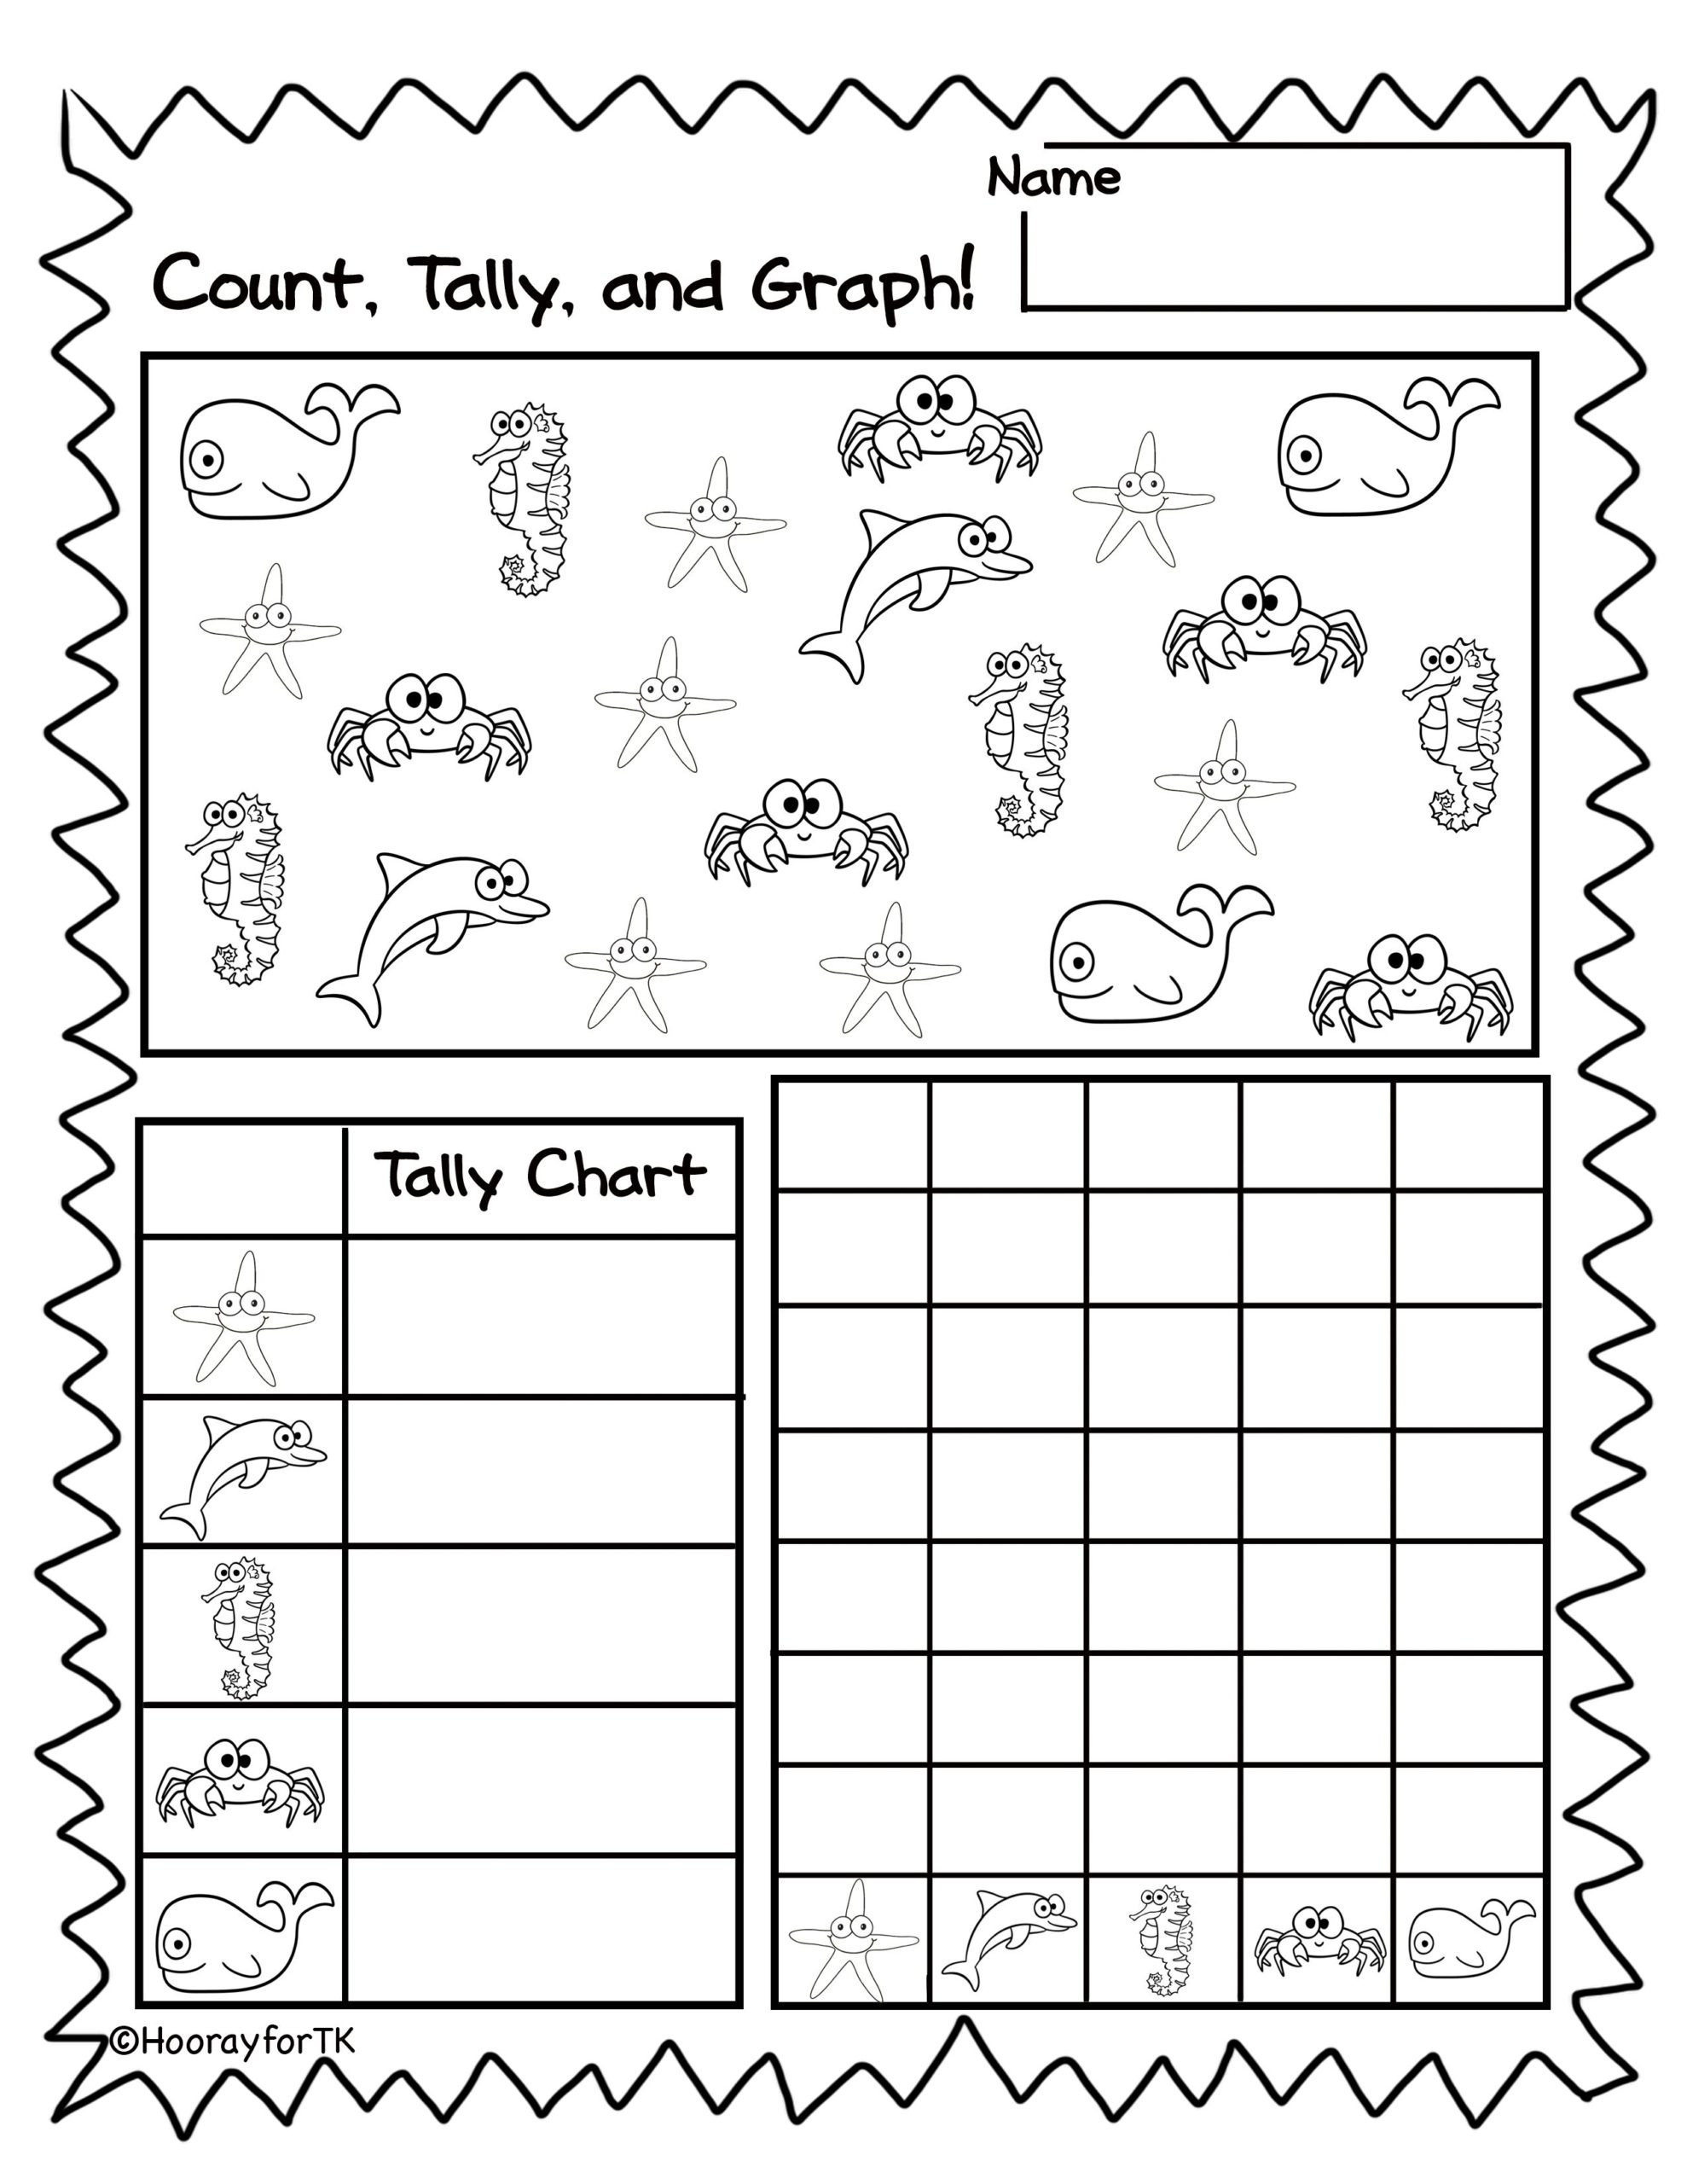 1st Grade Weather Worksheets Kindergarten Free Printable Weather Worksheets for